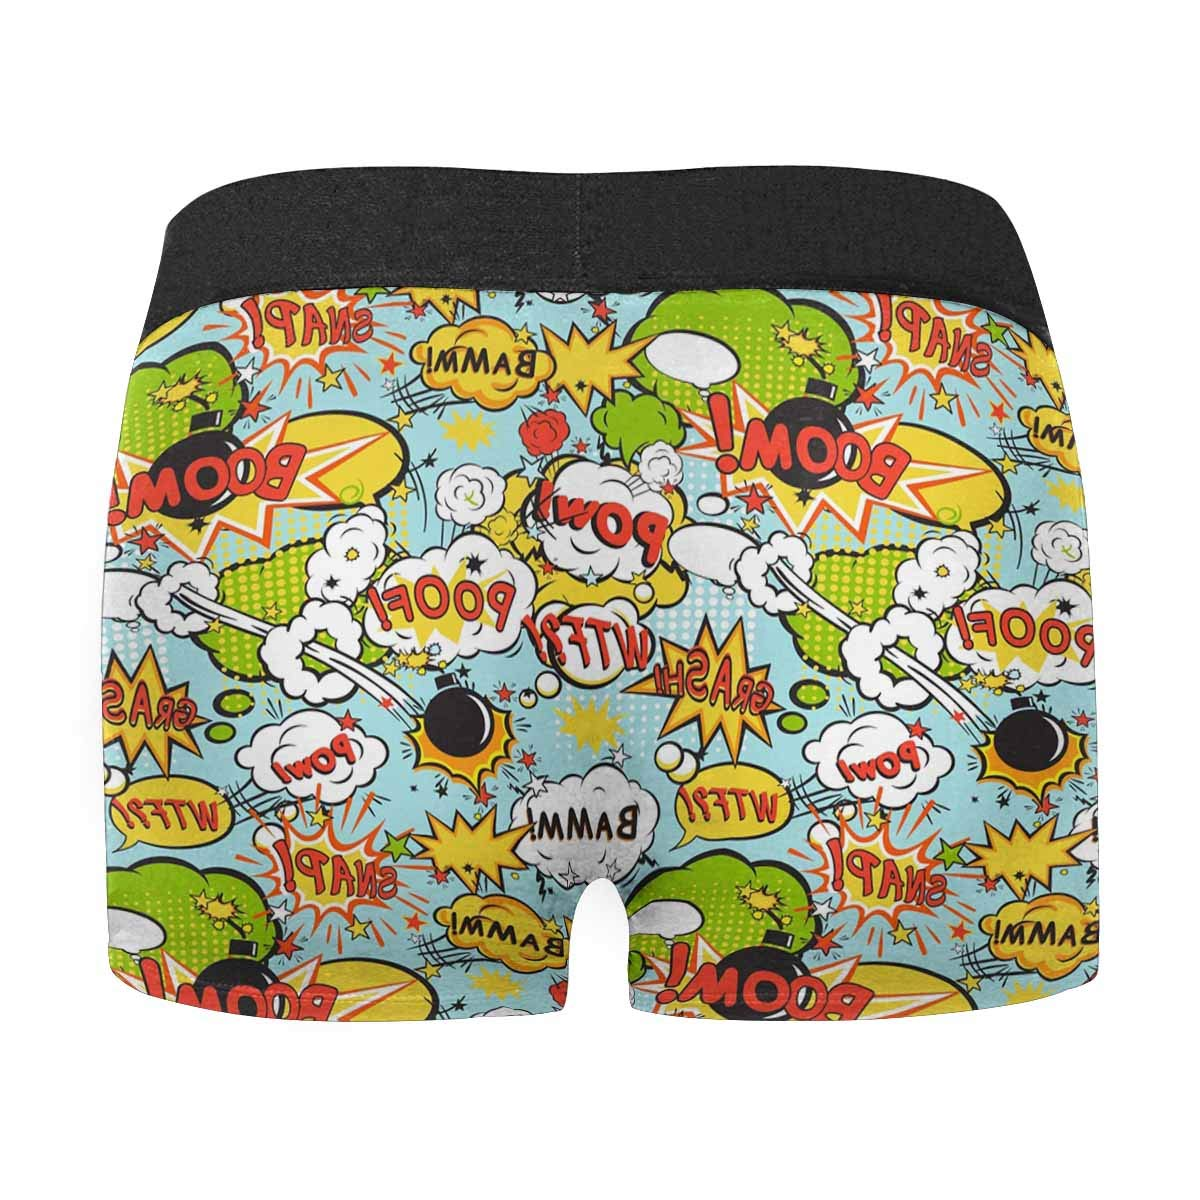 XS-3XL INTERESTPRINT Boxer Briefs Mens Underwear Comic Book Speech Bubbles